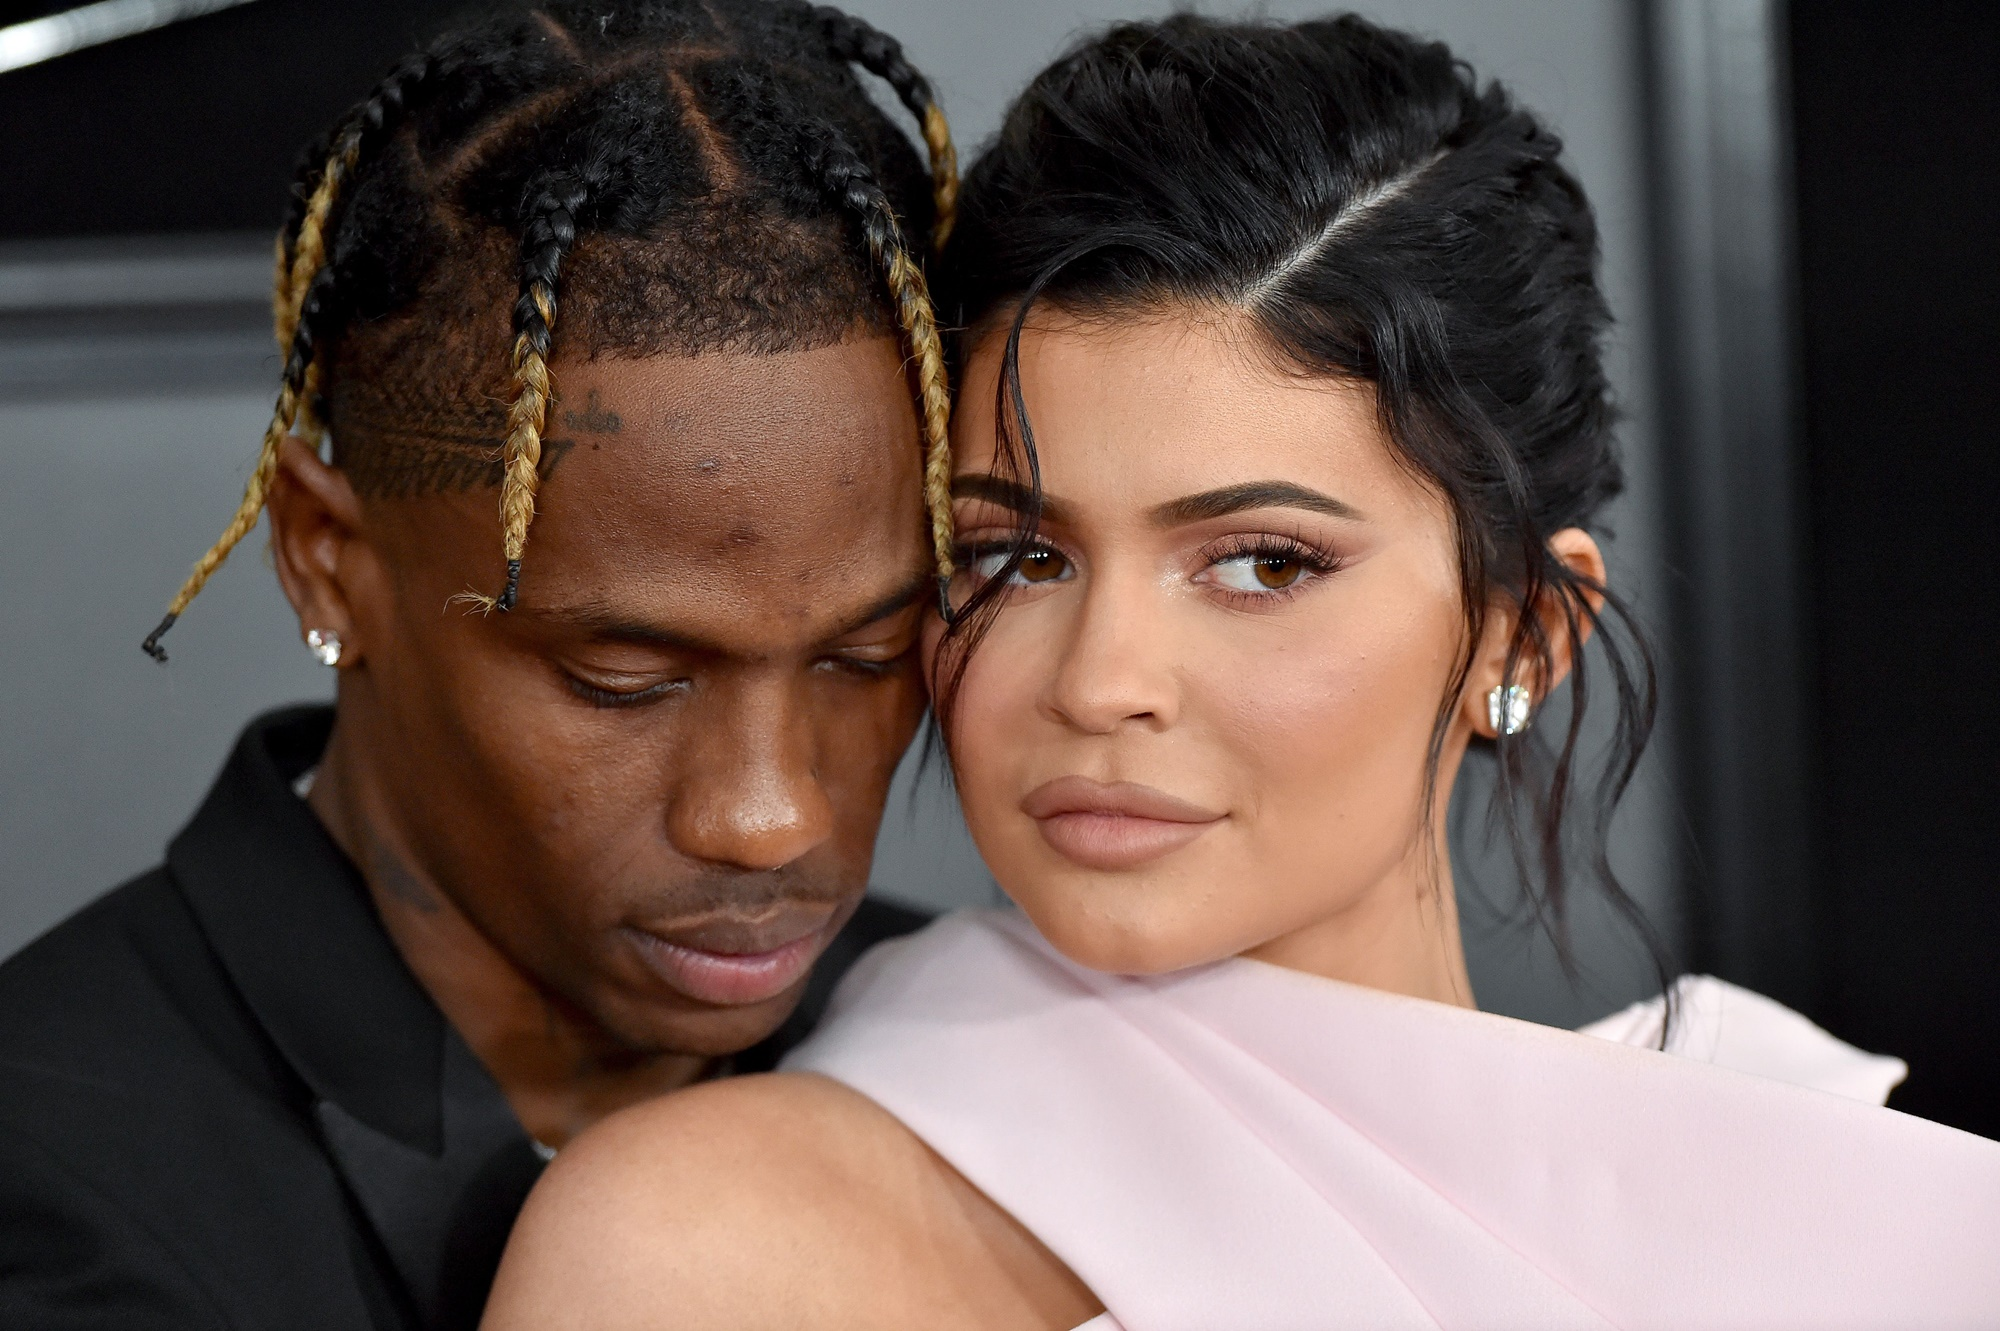 """kylie-jenner-takes-travis-scott-to-coachella-to-reconnect-fans-are-happy-stormi-websters-parents-are-trying-to-better-their-relationship"""